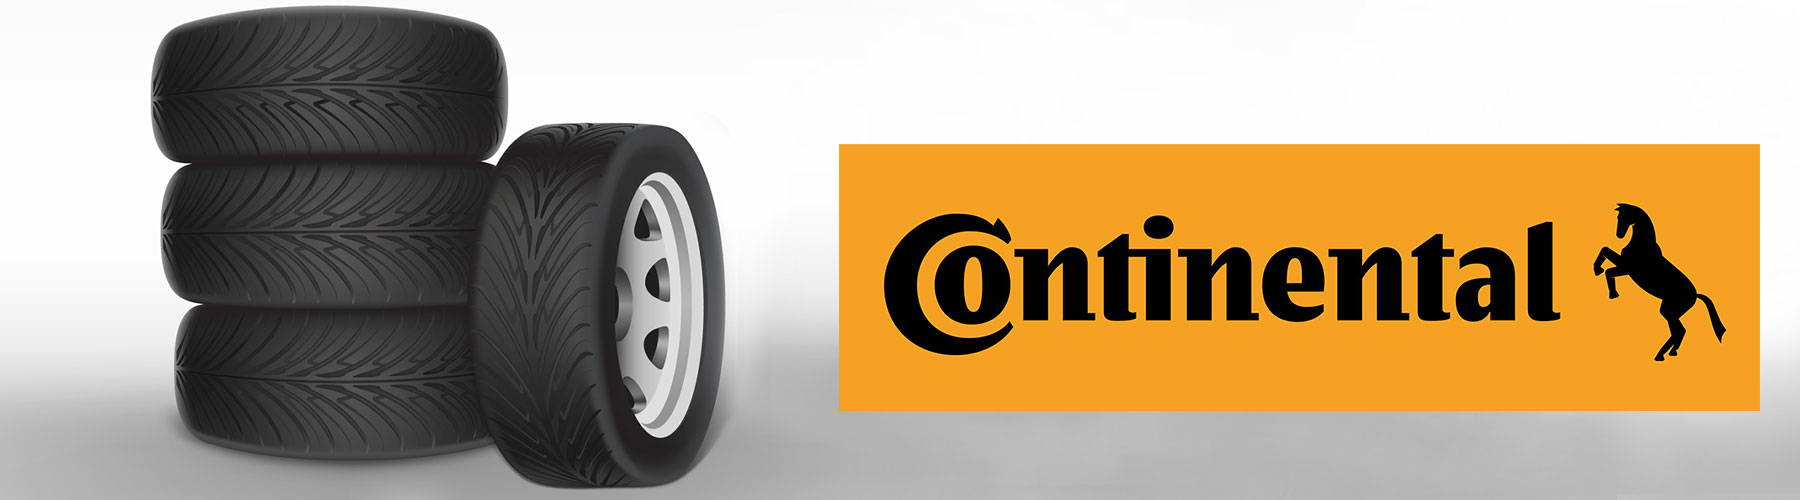 Continental logo with horse and car Tyres